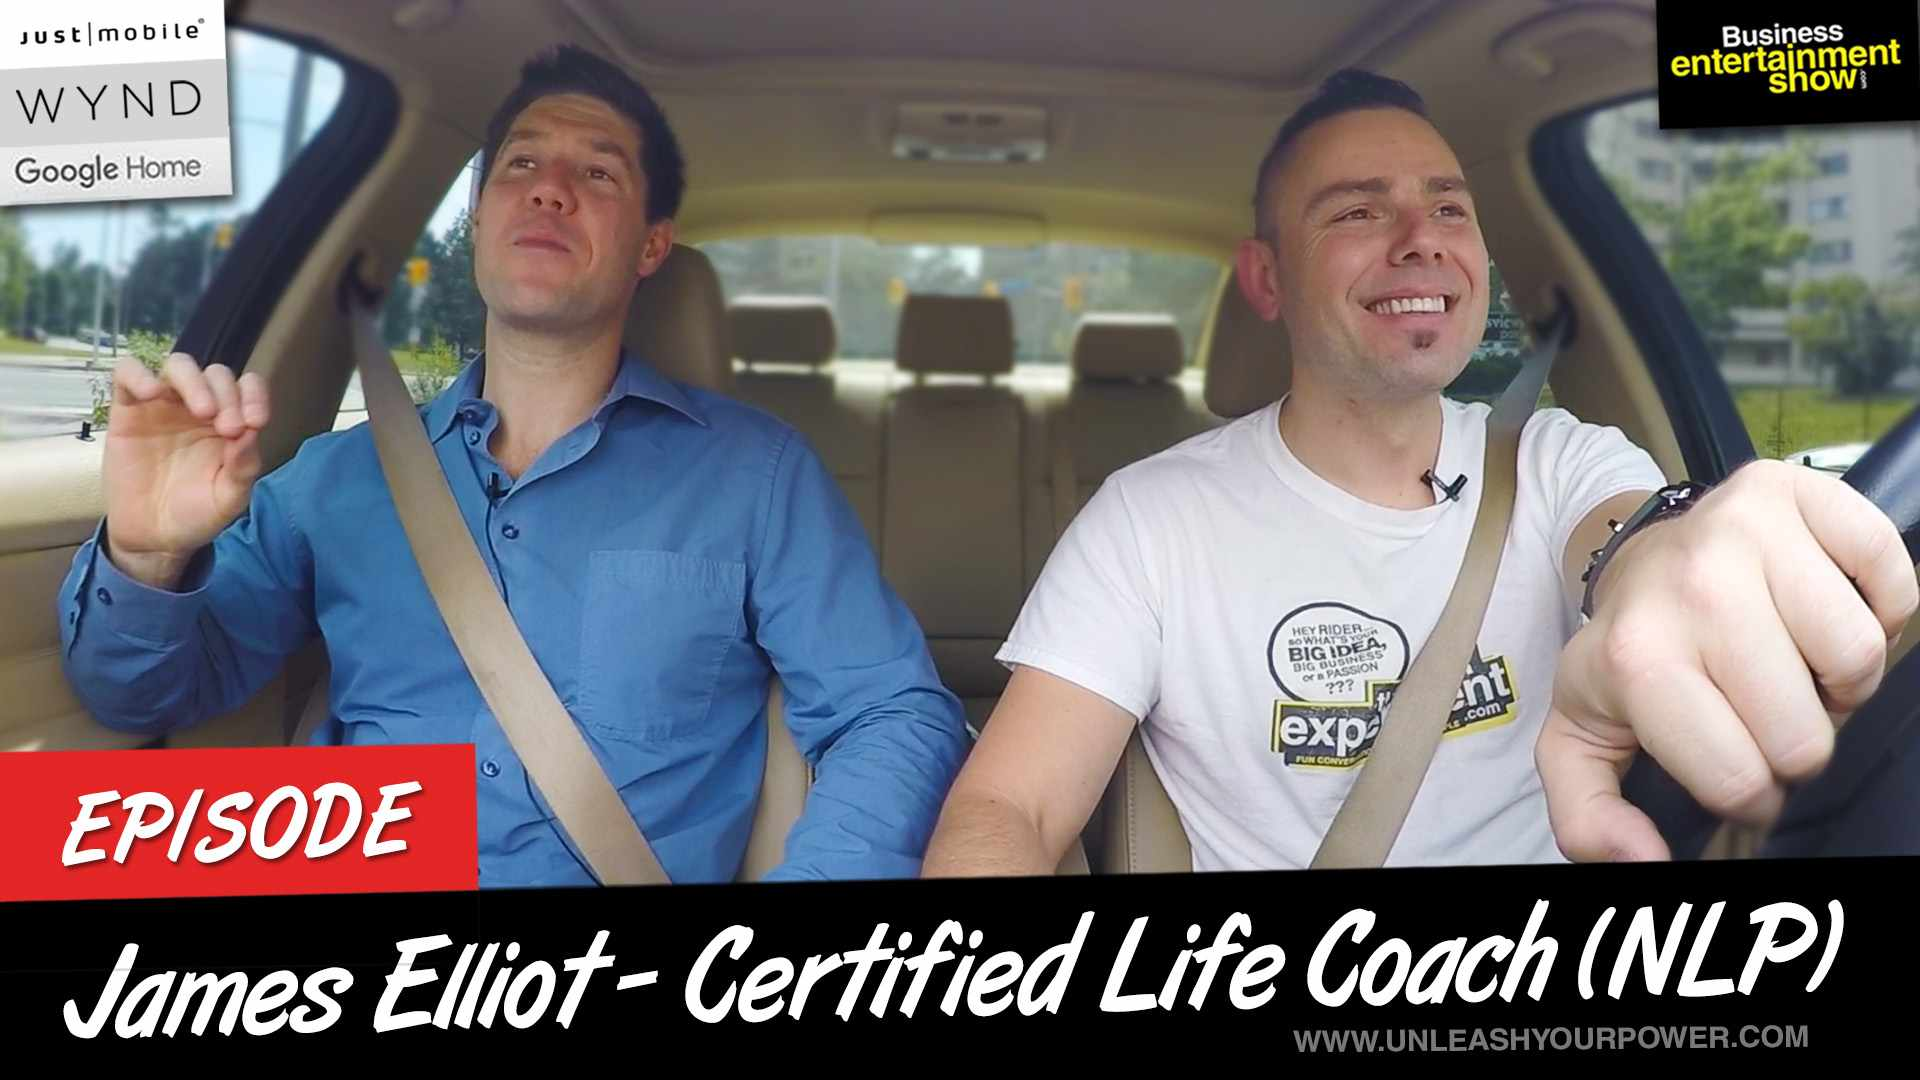 Entrepreneur Interview - Master Coach James Elliot on Business Entertainment Show ( Uber Experiment)